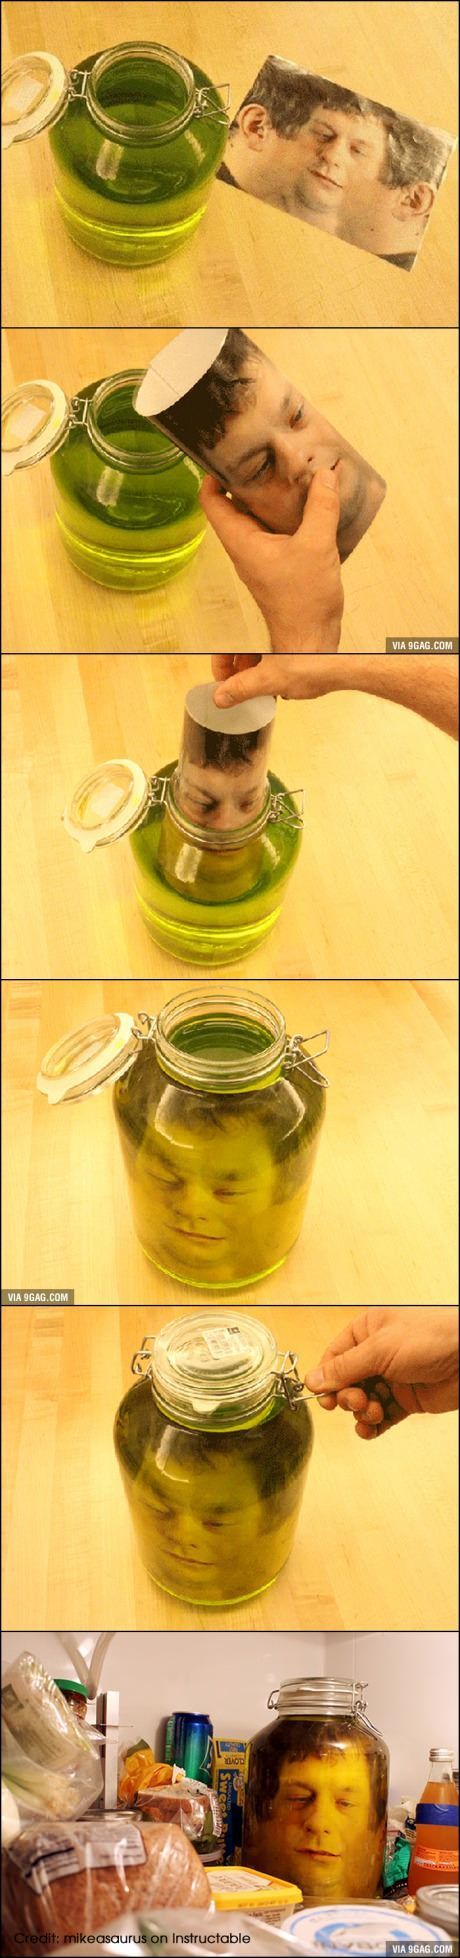 Head in a jar, scary! Great for Halloween. This has a great tutorial if you want to DIY and also an alternative to just download theirs